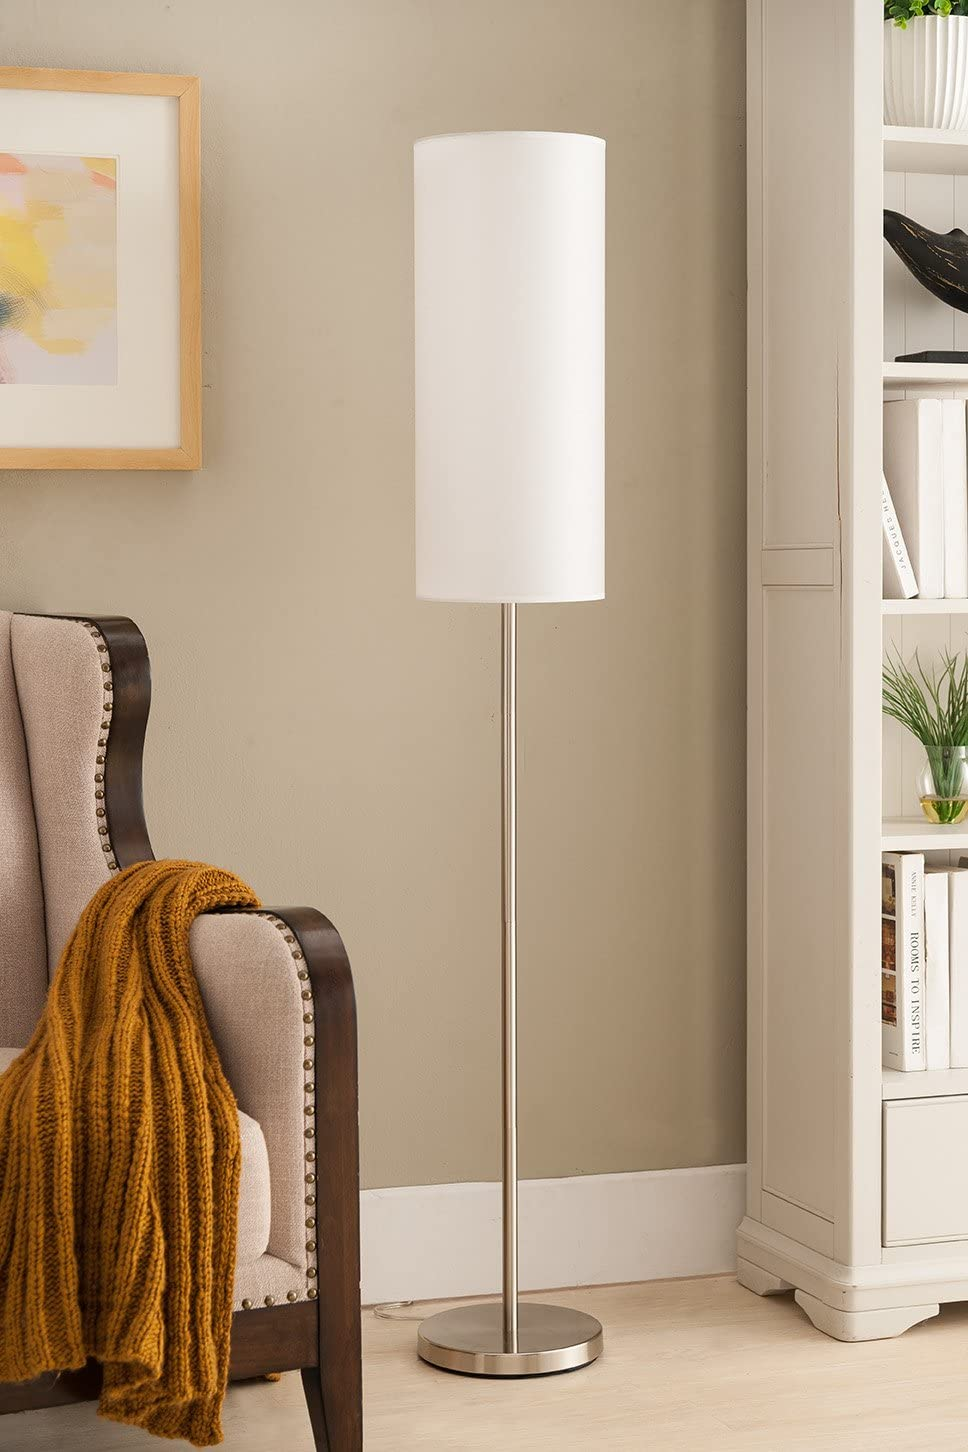 Kings Brand 59 H Brushed Nickel With White Fabric Shade Floor Lamp